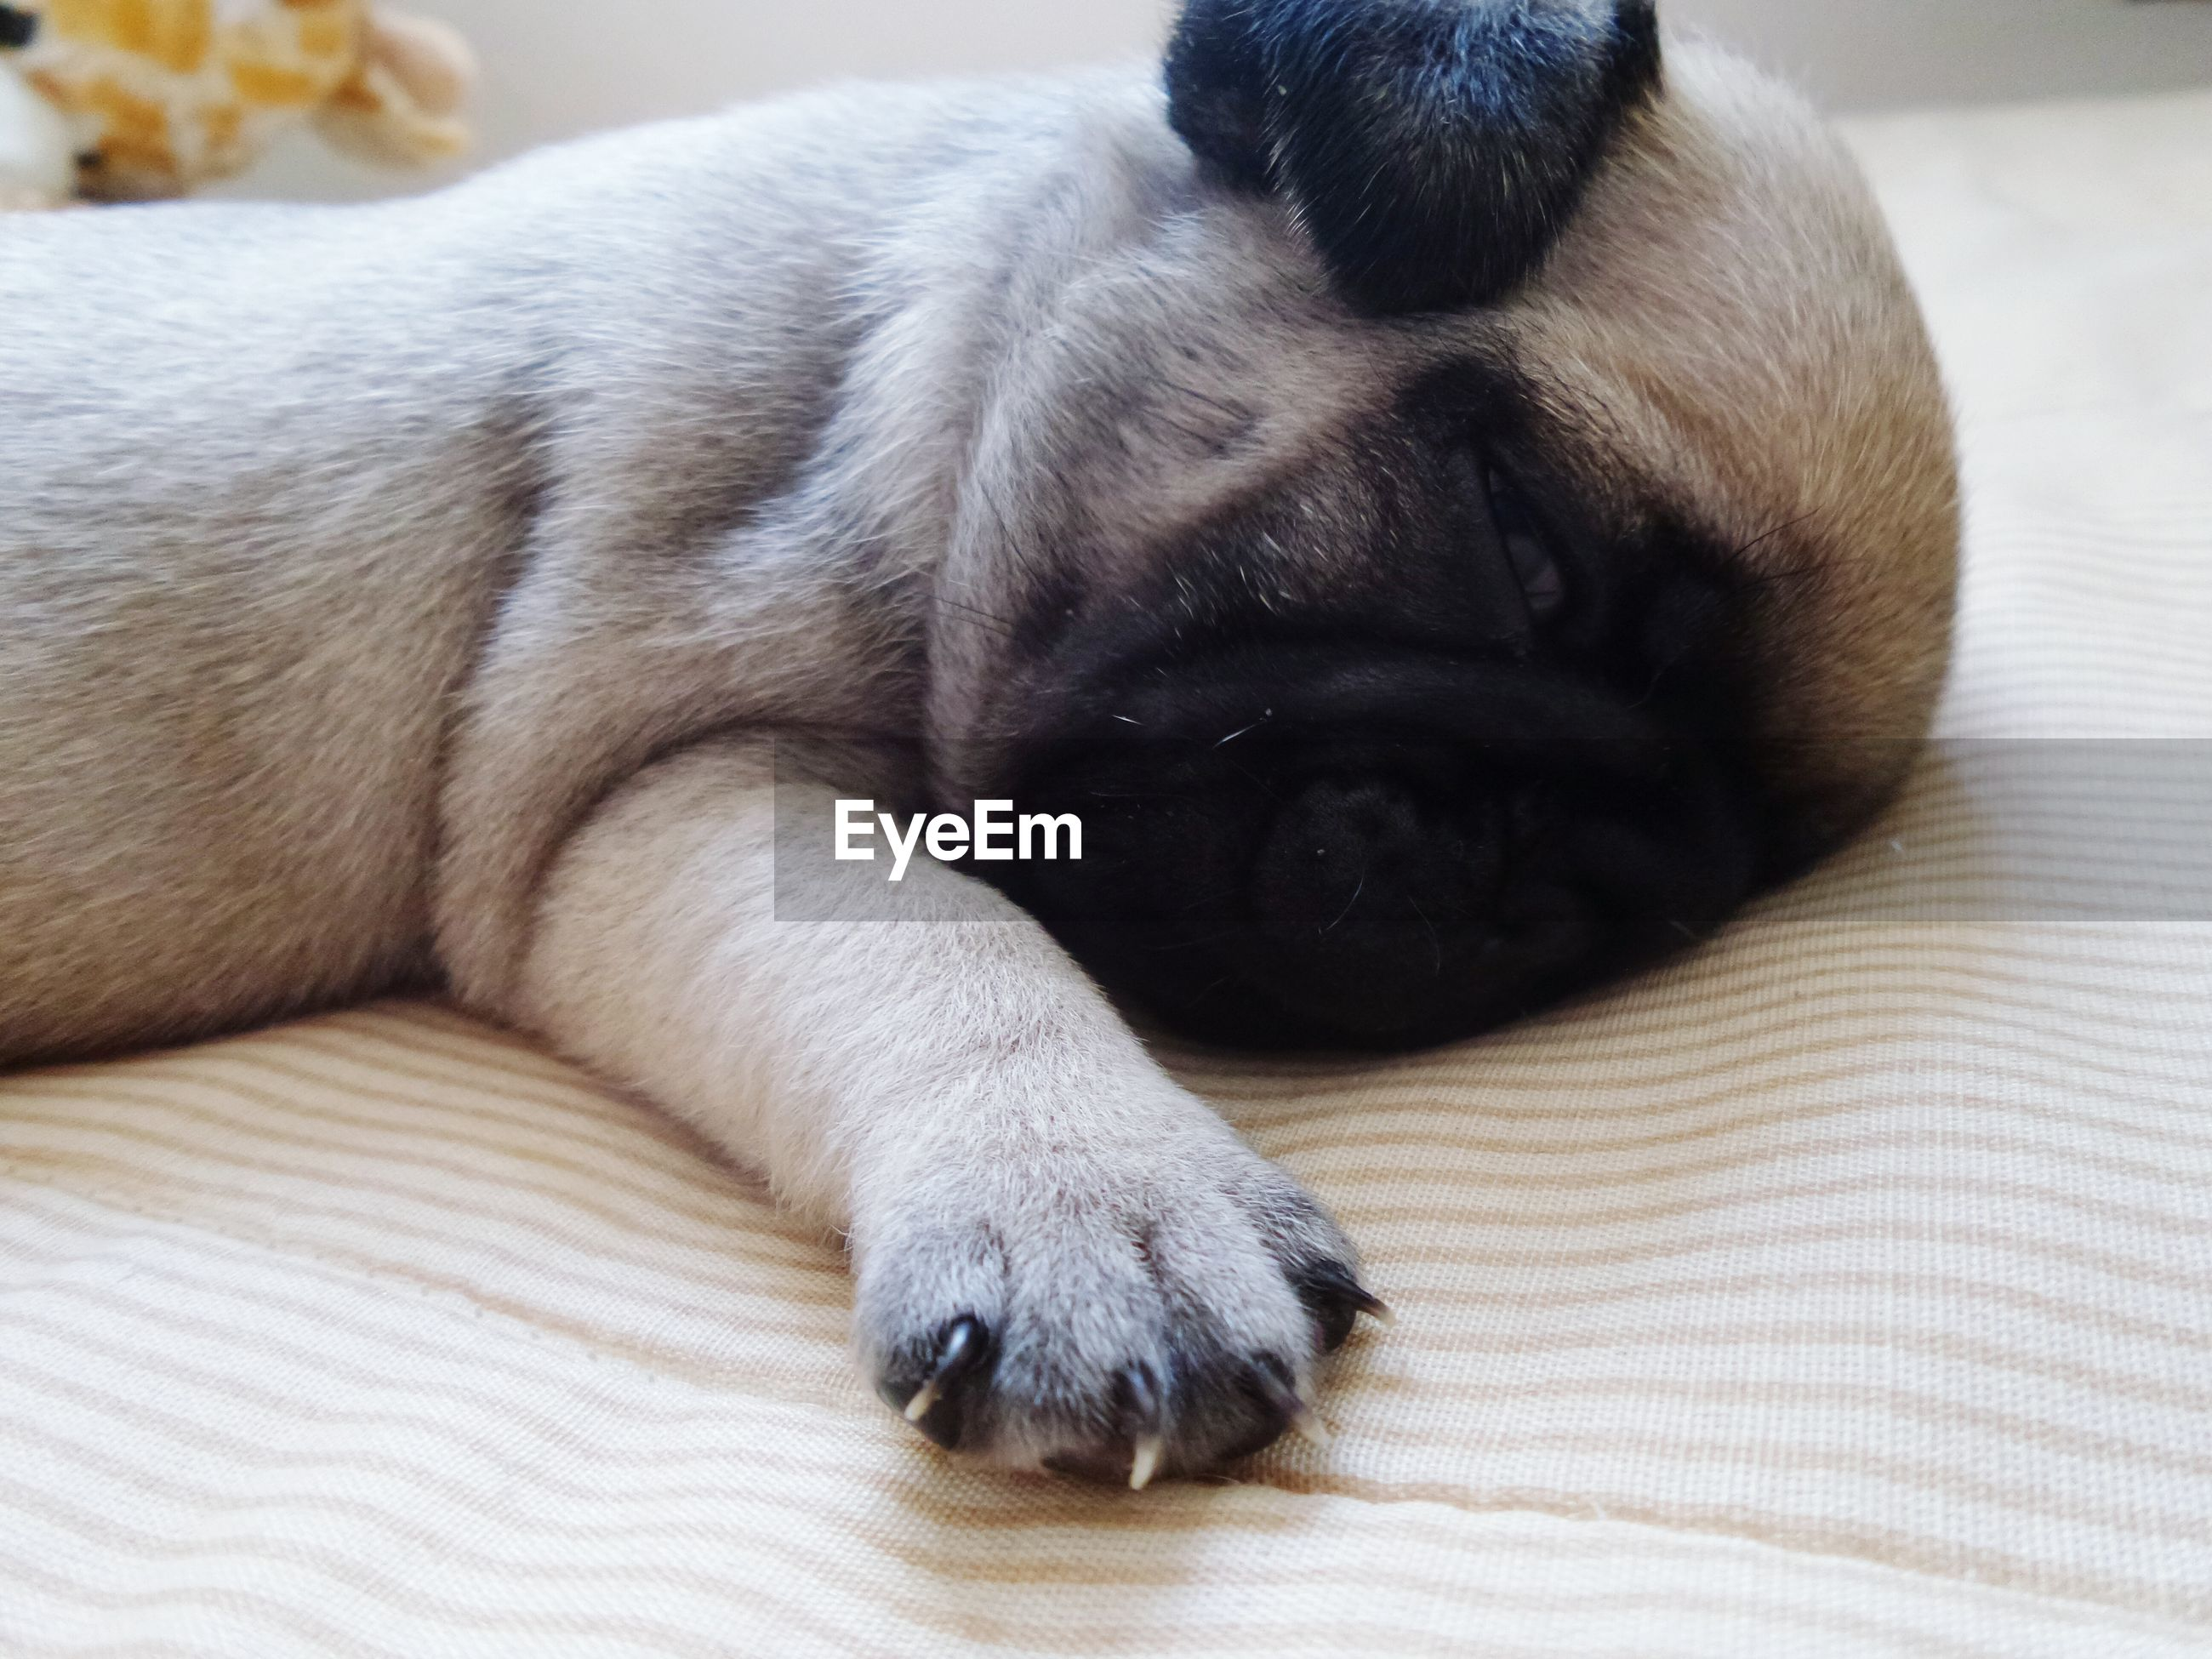 pets, domestic animals, dog, animal themes, mammal, one animal, indoors, relaxation, resting, sleeping, close-up, animal head, lying down, animal body part, bed, comfortable, no people, home interior, eyes closed, focus on foreground